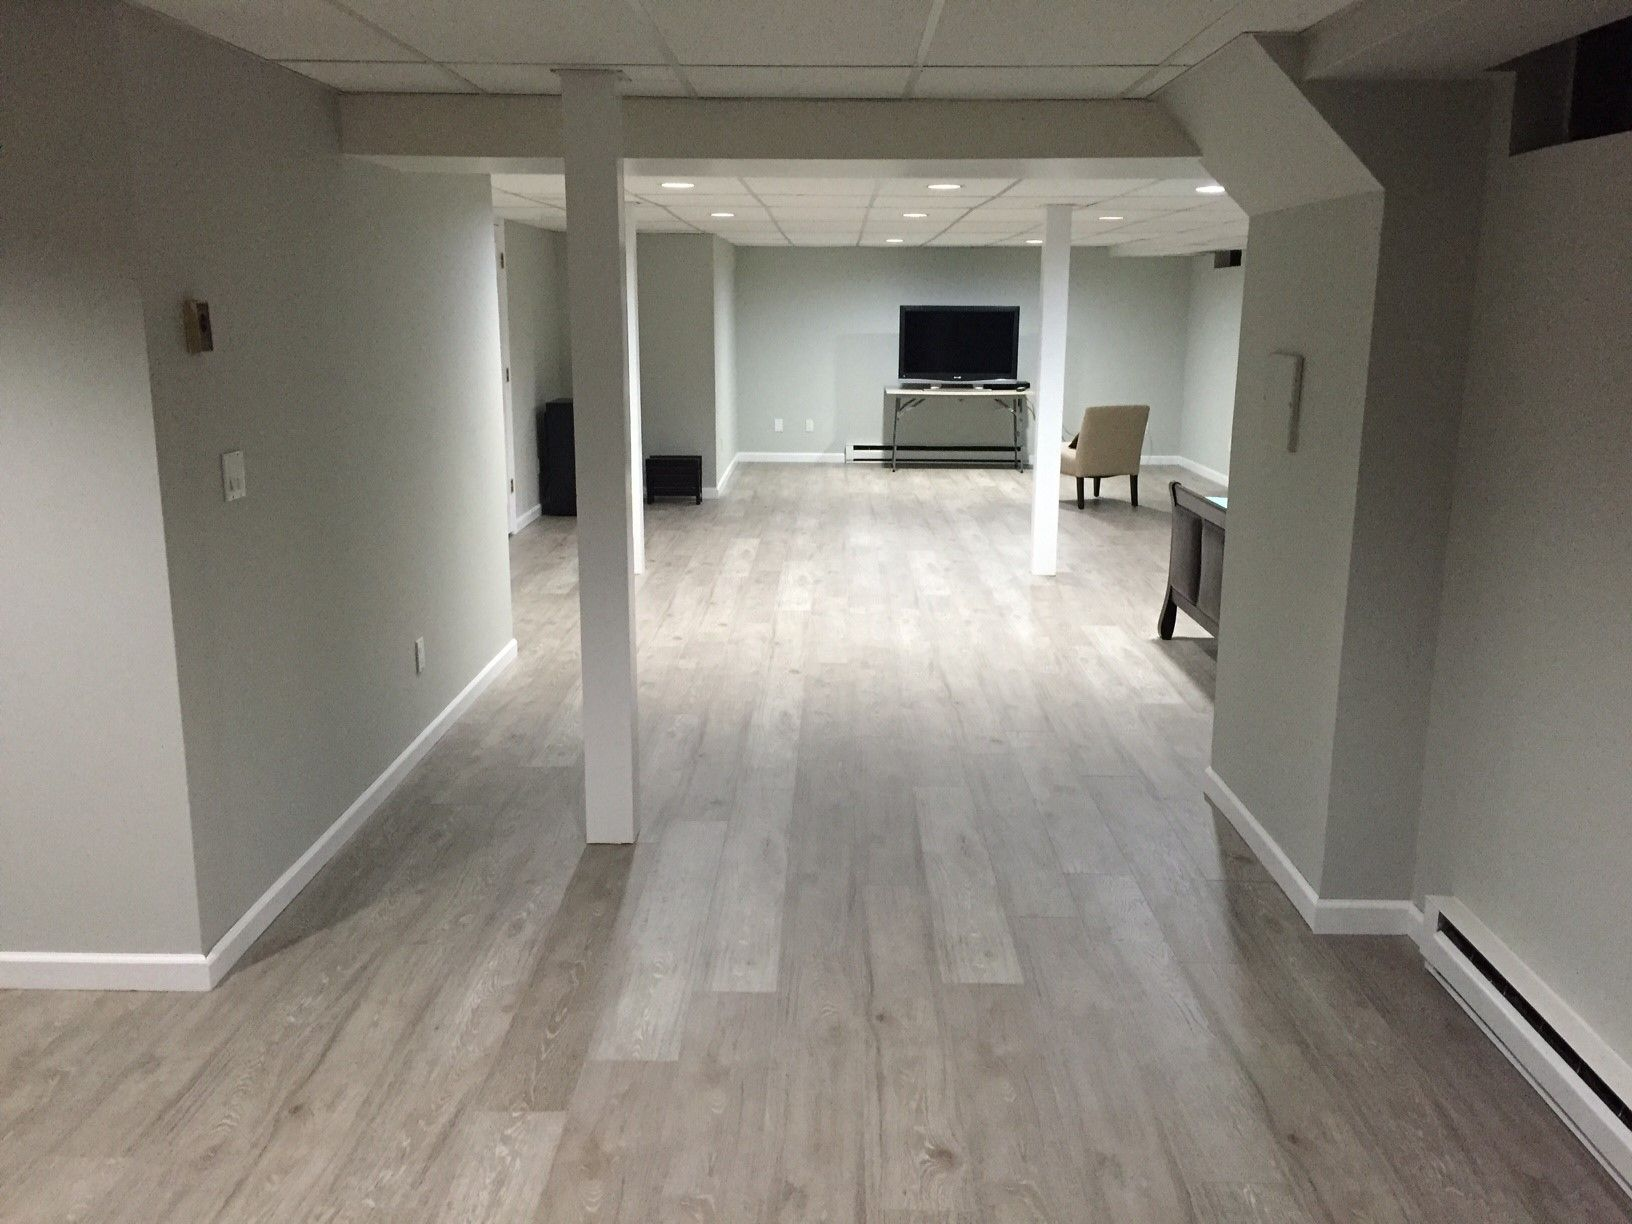 laminate flooring for basement. Jose G. Upgraded His Basement With Kronoswiss Ecru! Laminate Flooring Using Express Arizona Tempe For A